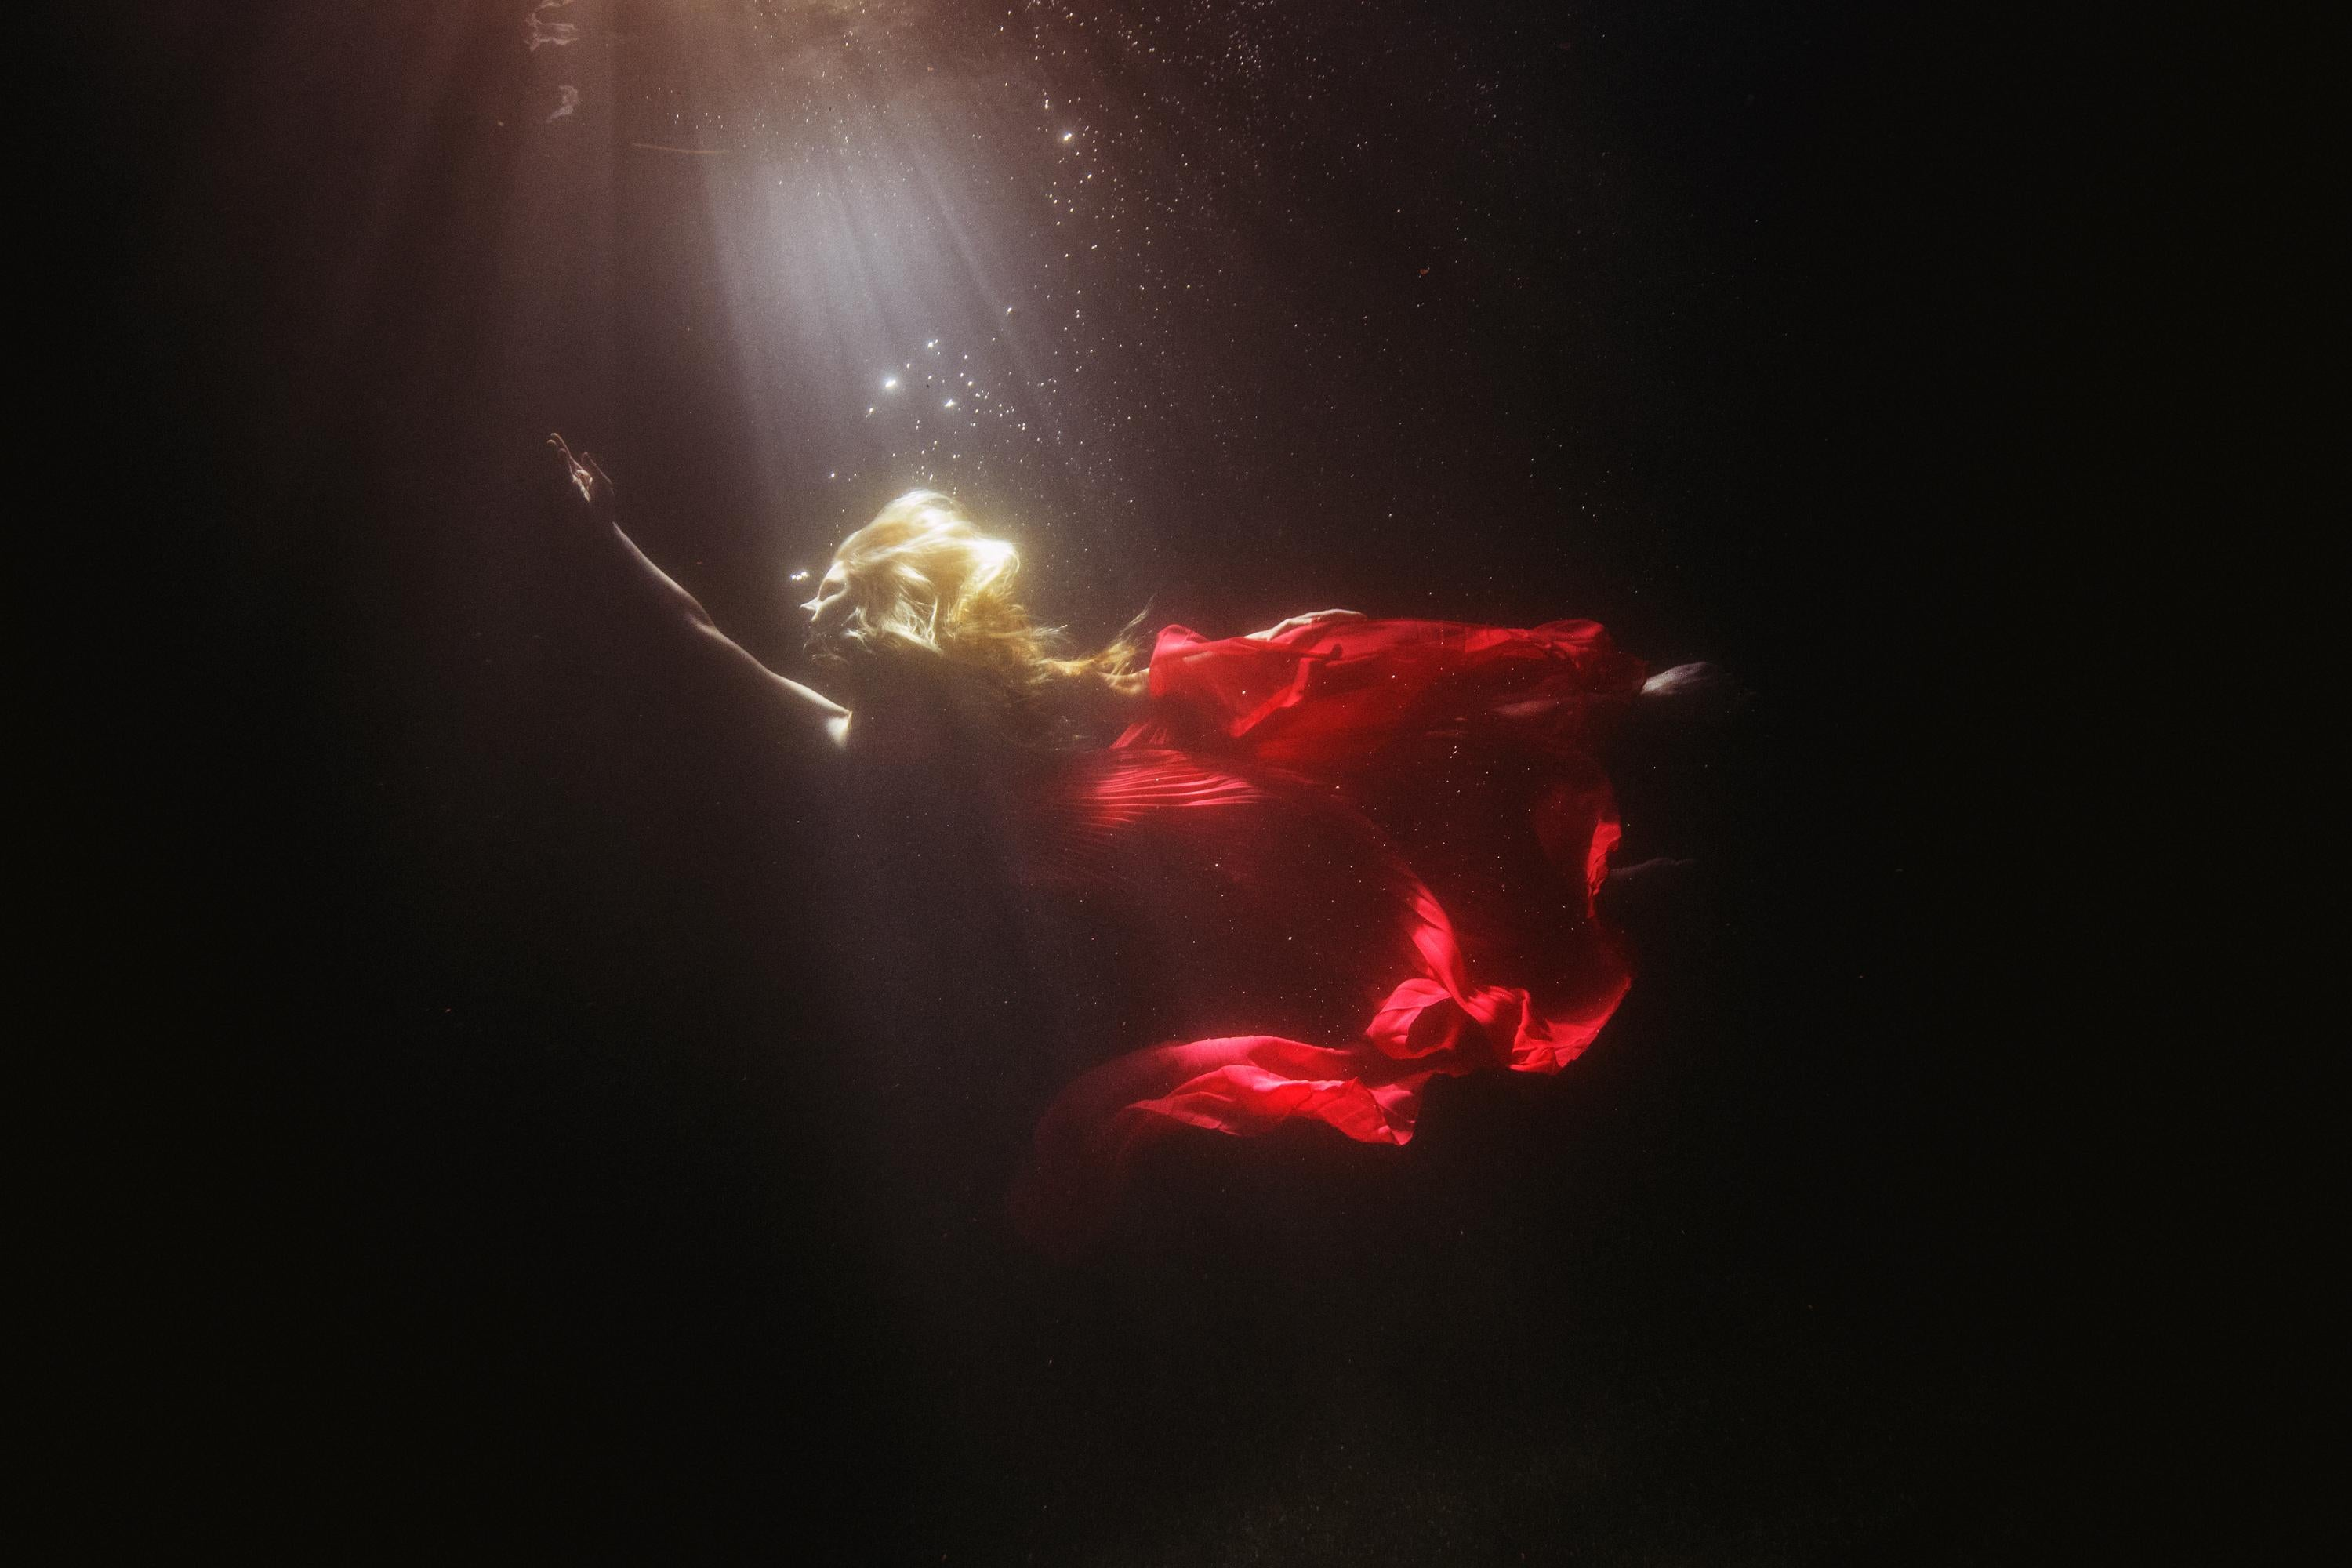 Goddess, Photography, Story teller, Hollywood, Water, Dress, Red